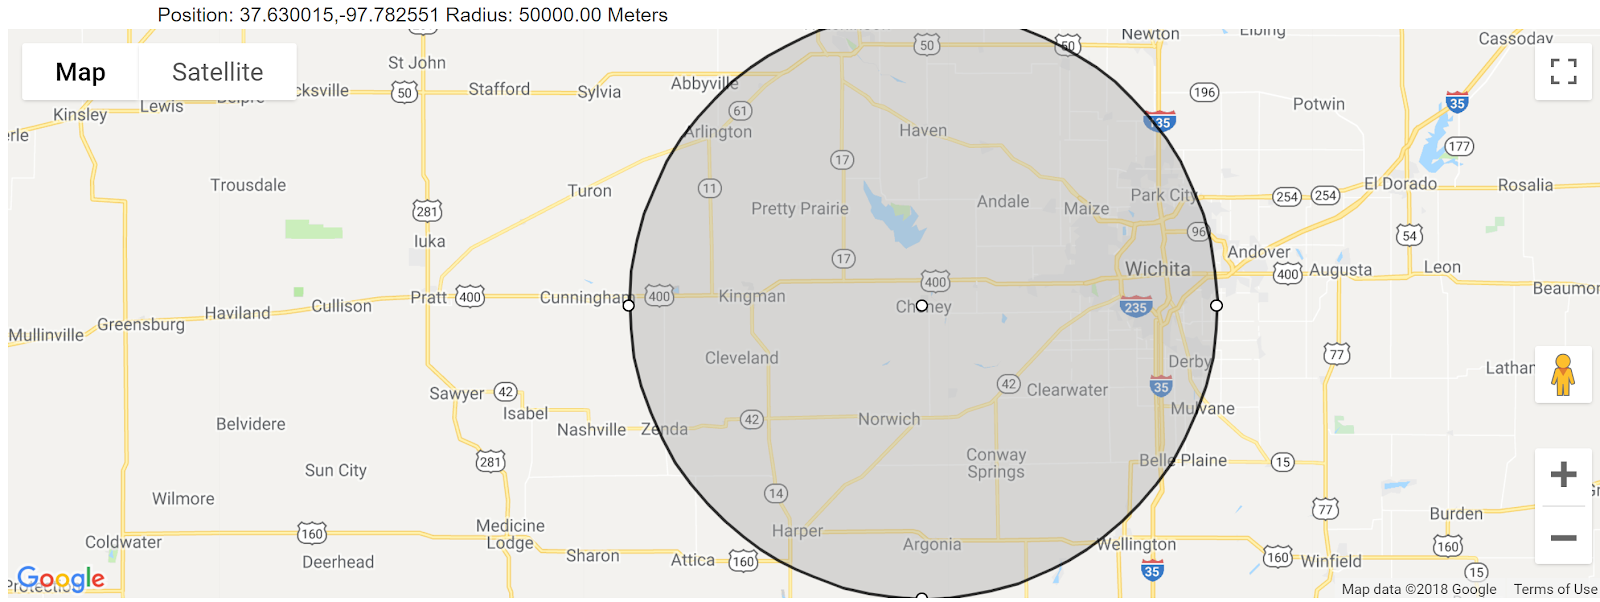 The accuracy radius for a given latitude-longitude pair.